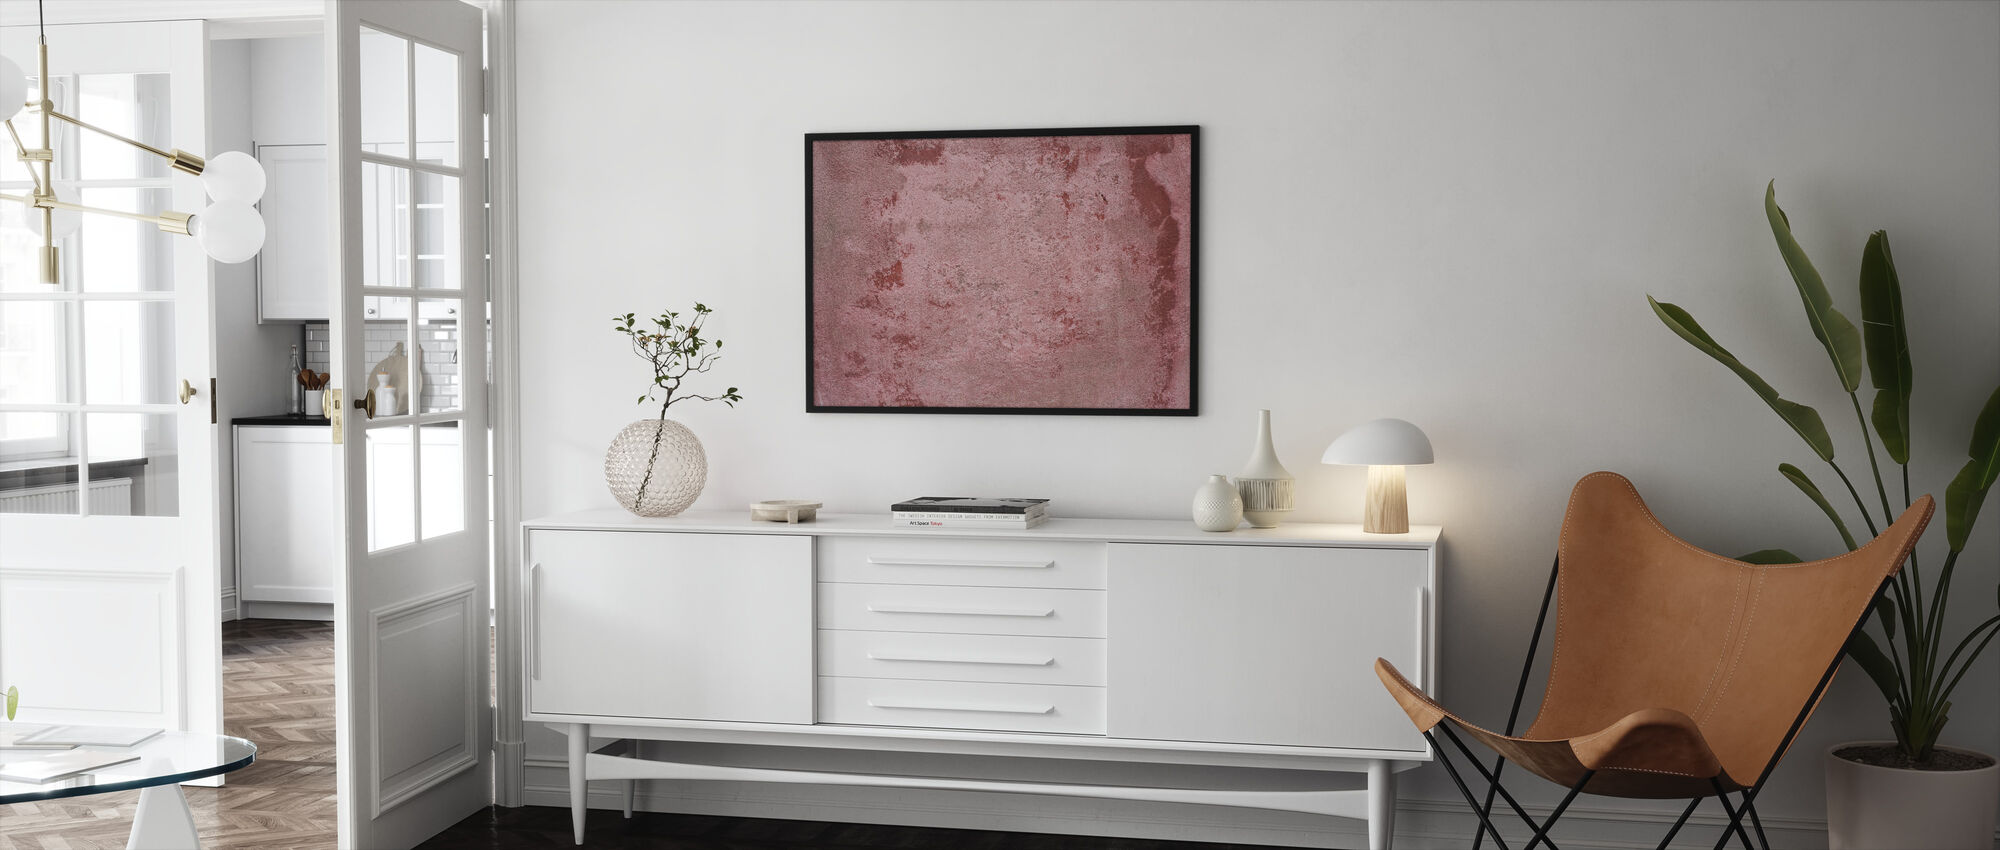 Rusty Patched Plate - Framed print - Living Room